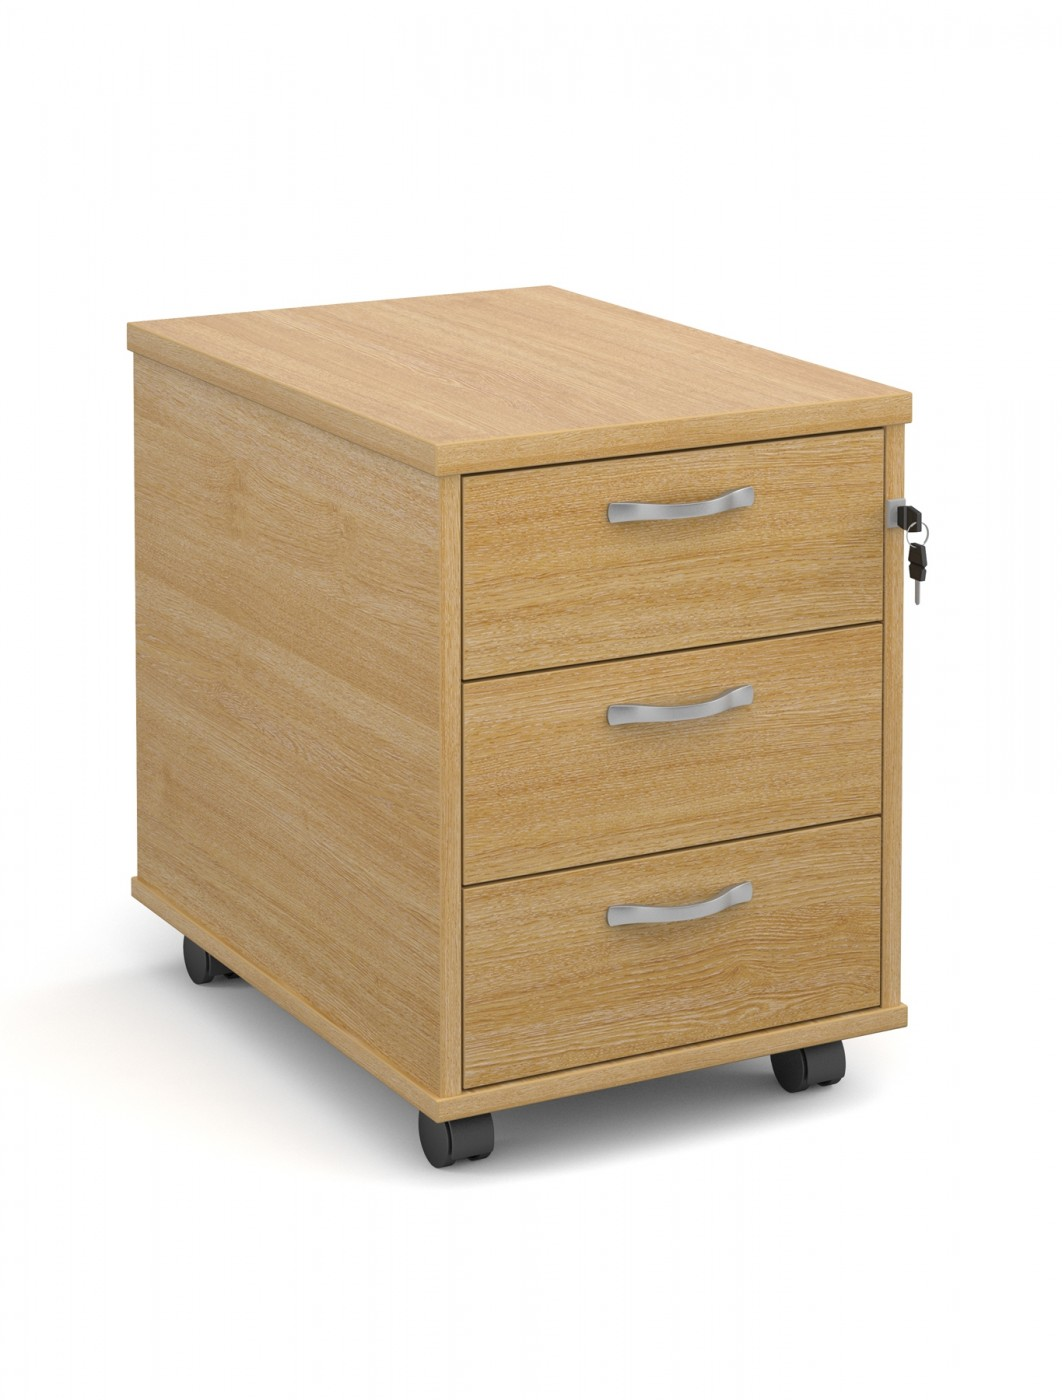 Cool Wooden Home Office Furniture Tough Filing Cabinet With Metal Handles